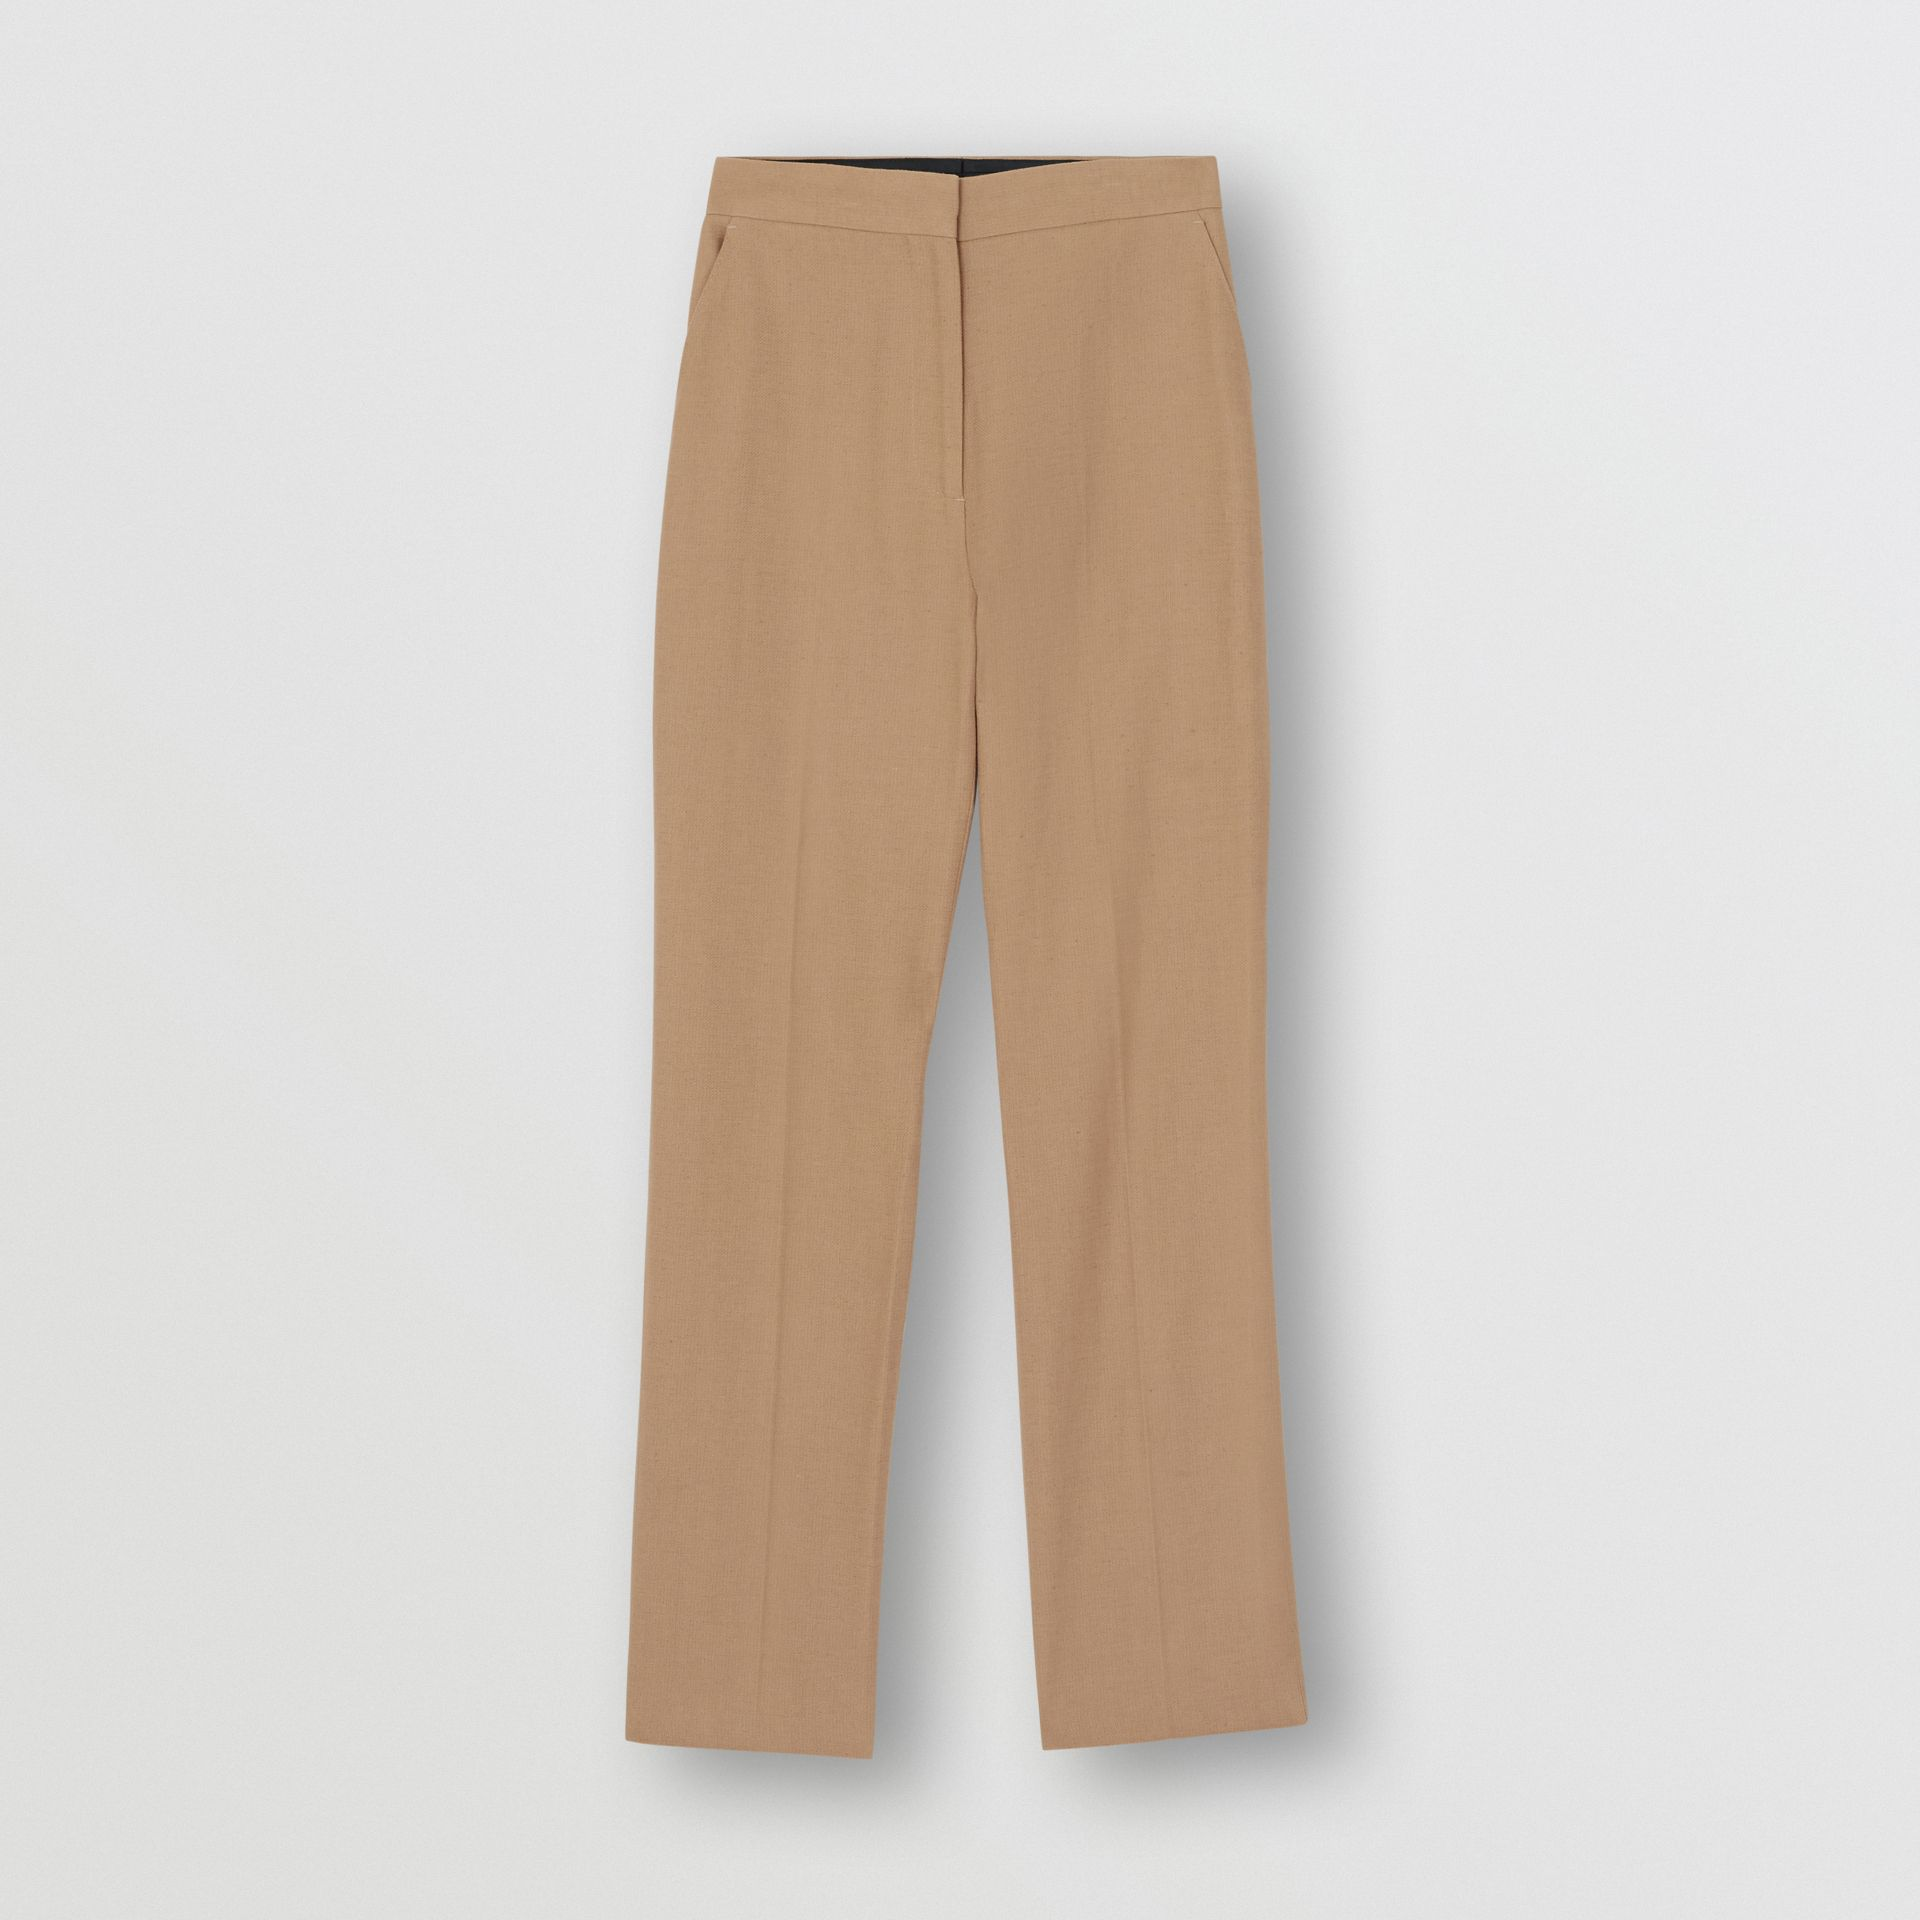 Cotton Linen Tailored Trousers in Ceramic Brown - Women | Burberry United Kingdom - gallery image 3